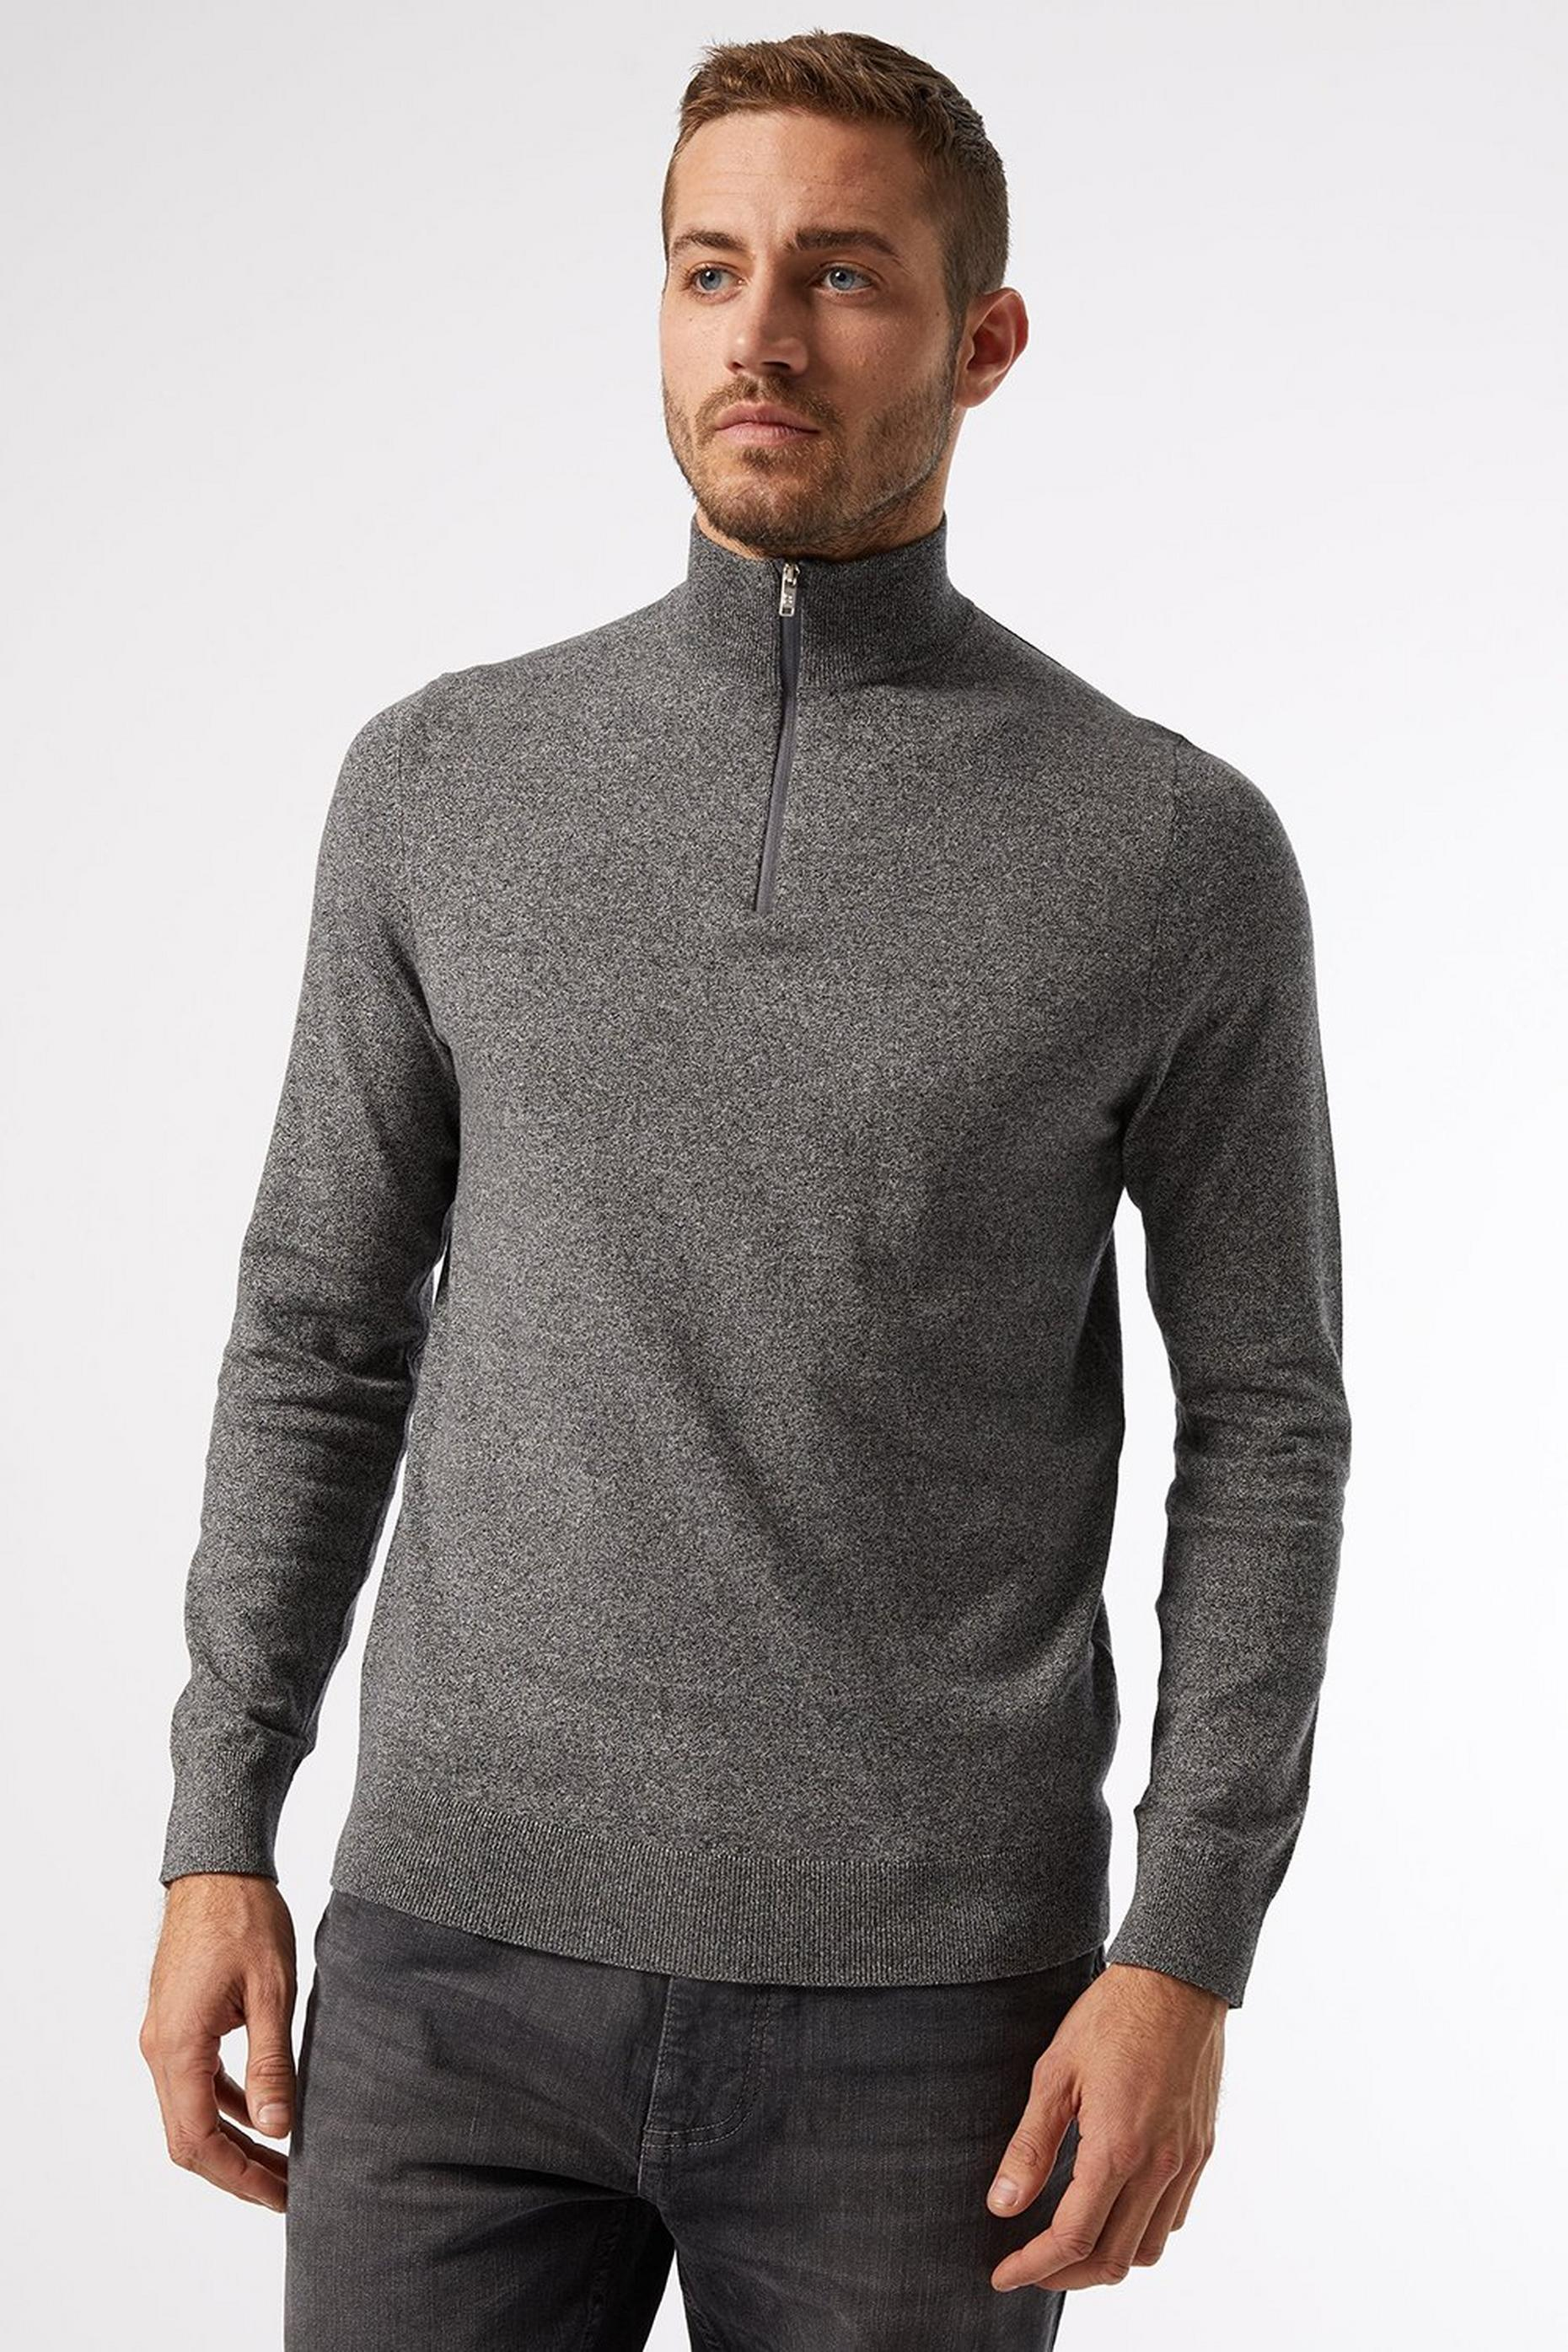 Grey Twist Half Zip Jumper With Organic Cotton